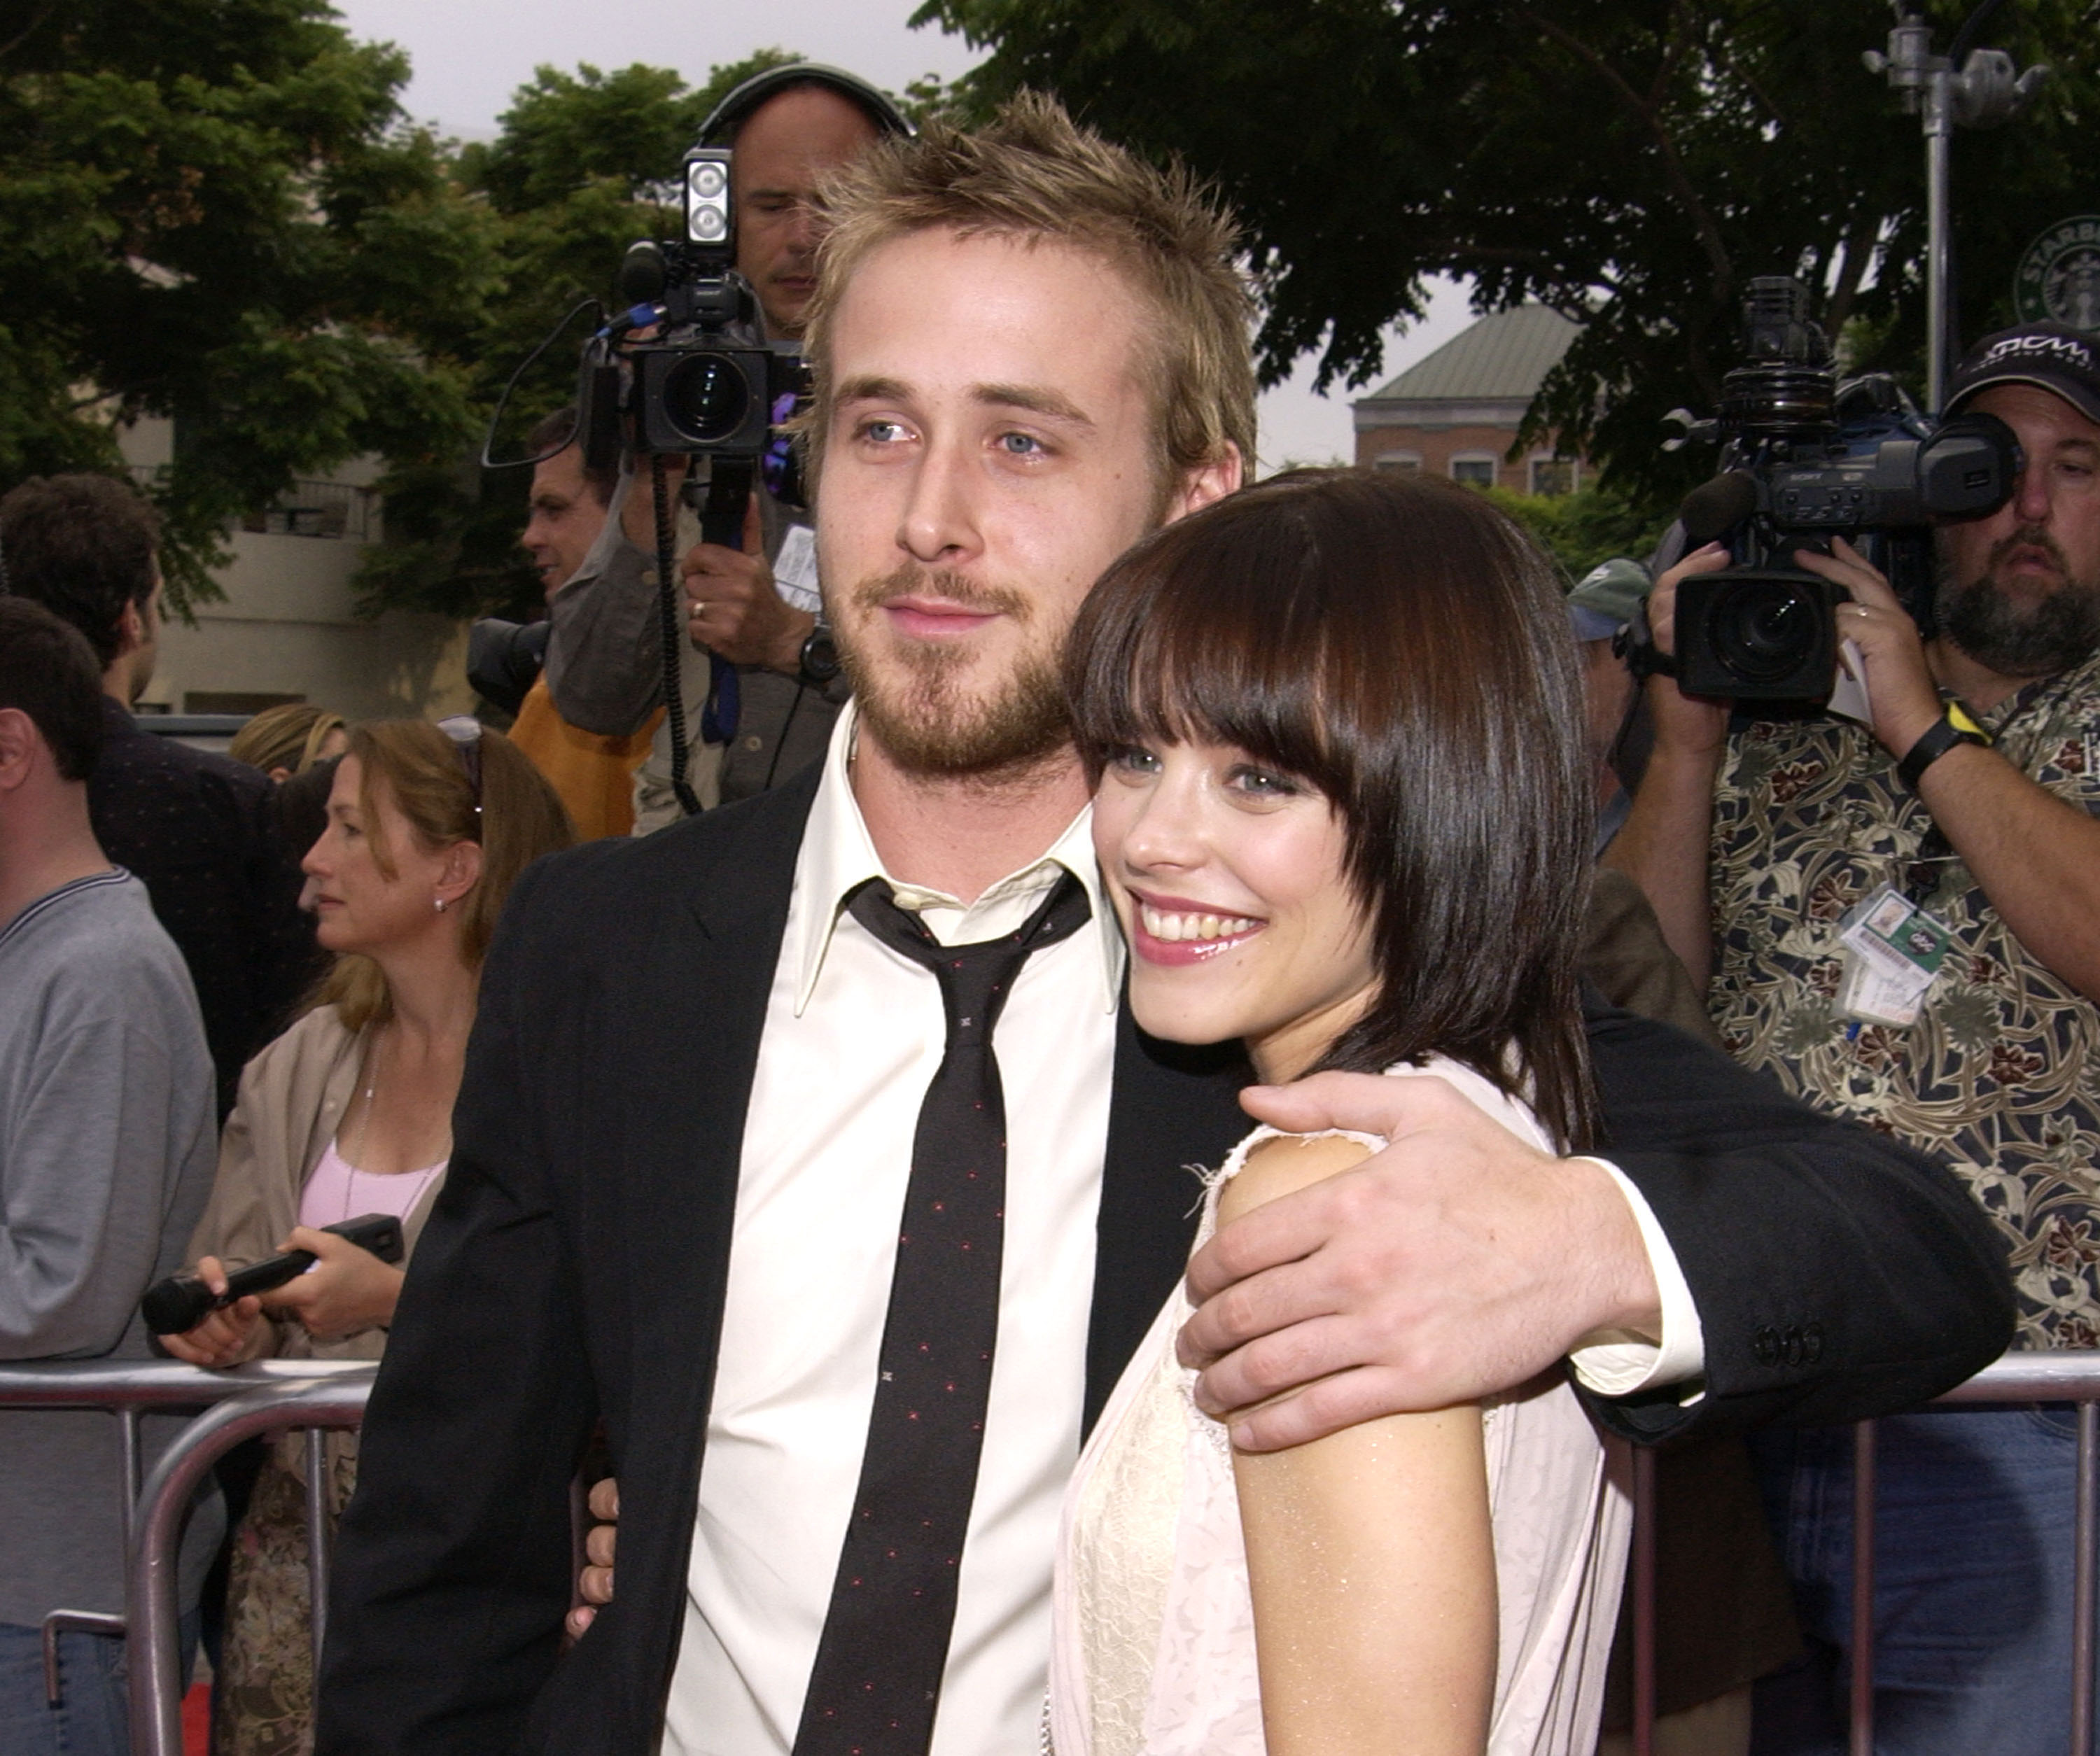 Ryan gosling dated who has What Really